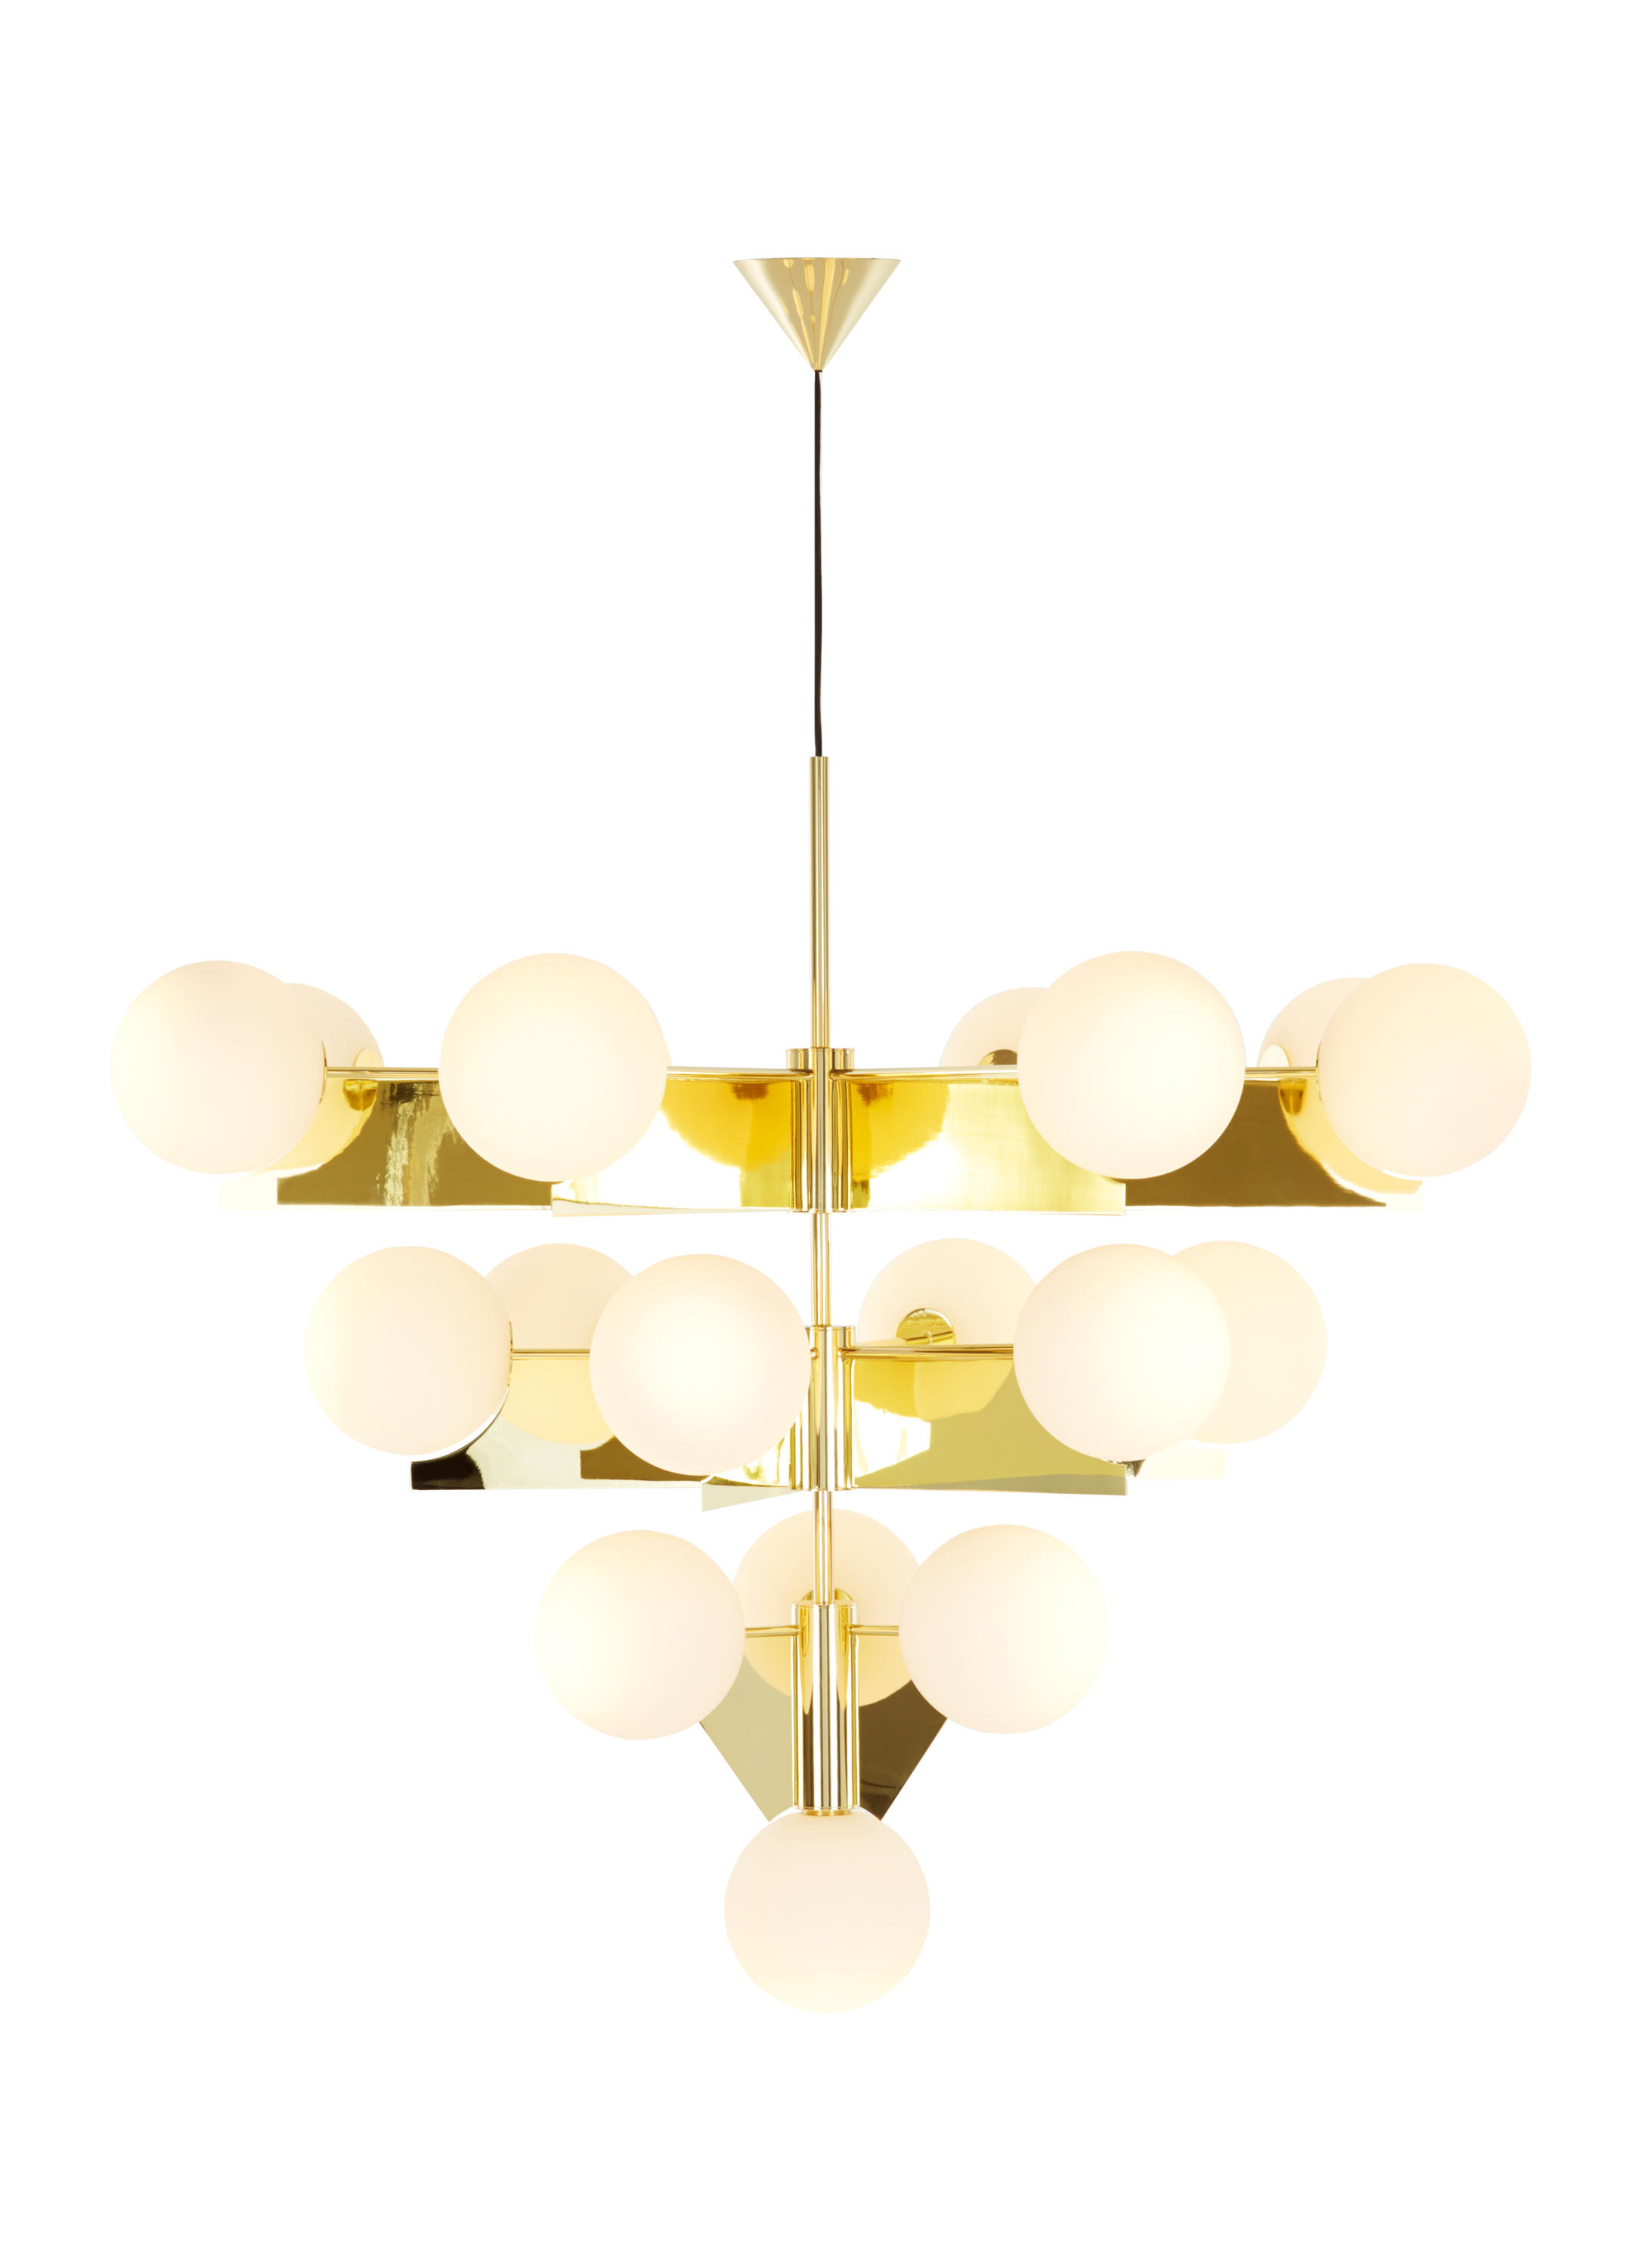 PLANE CHANDELIER - General lighting from Tom Dixon | Architonic